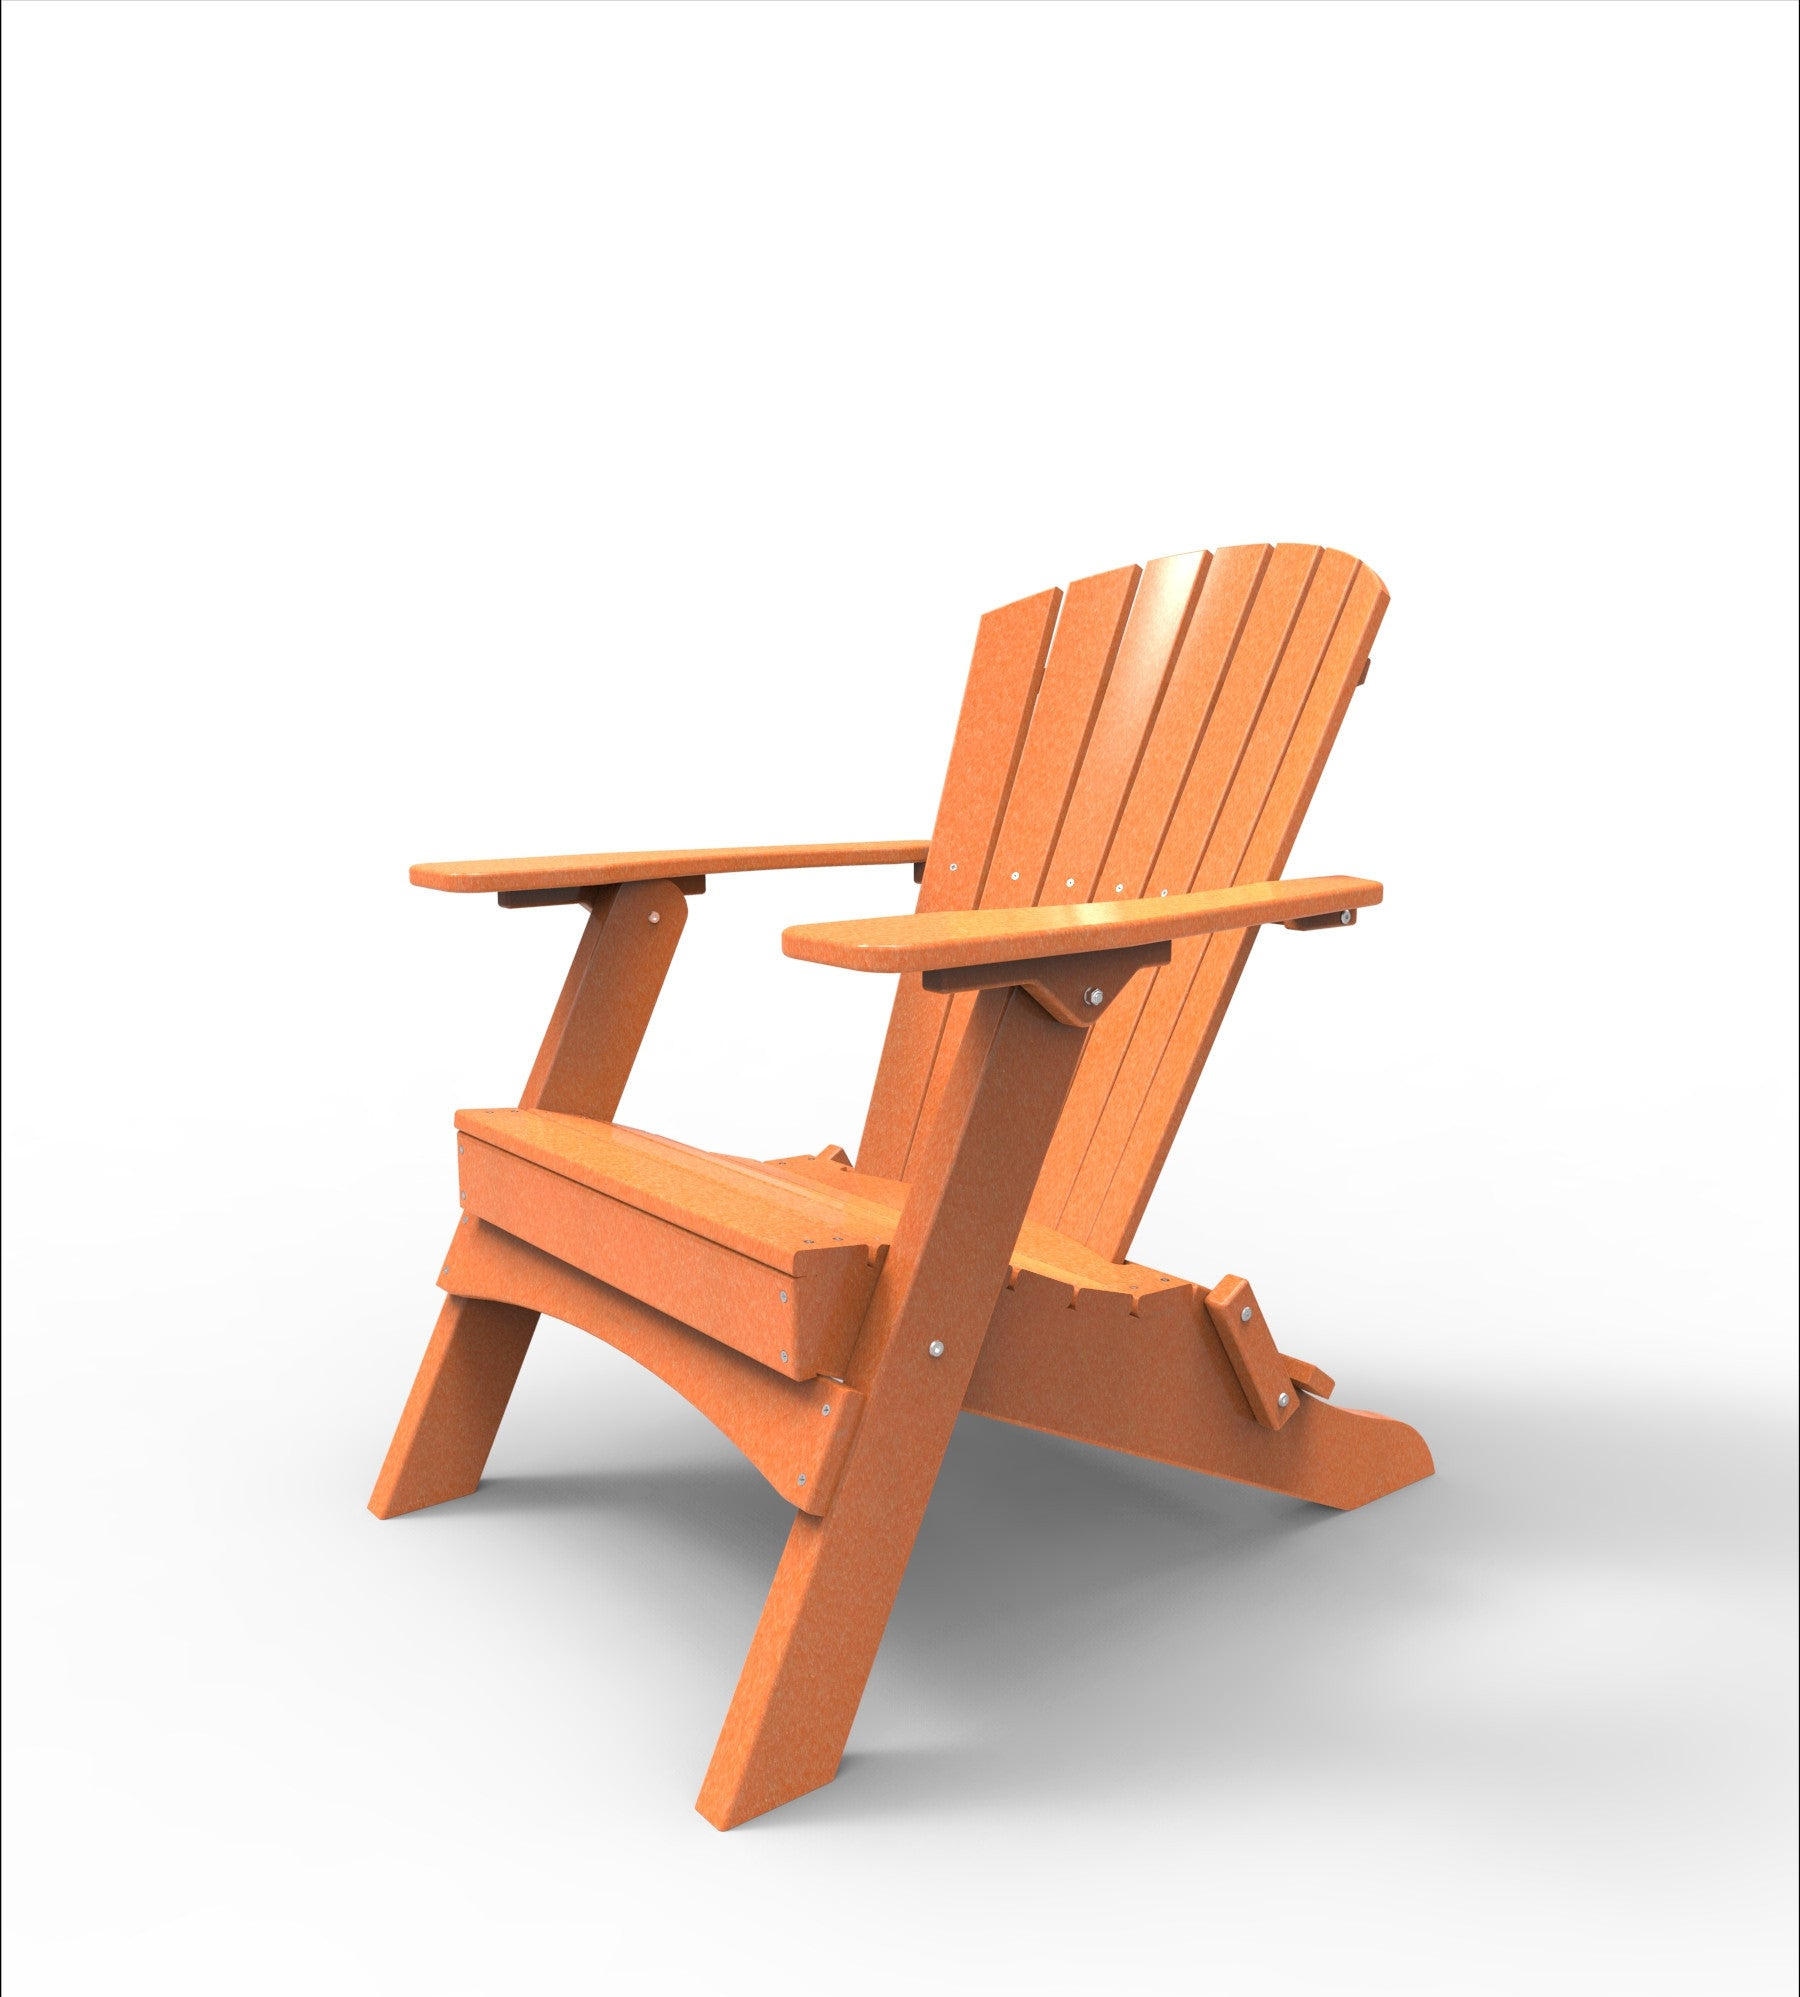 Hyannis Folding Adirondack Chair Malibu Outdoor Living Home